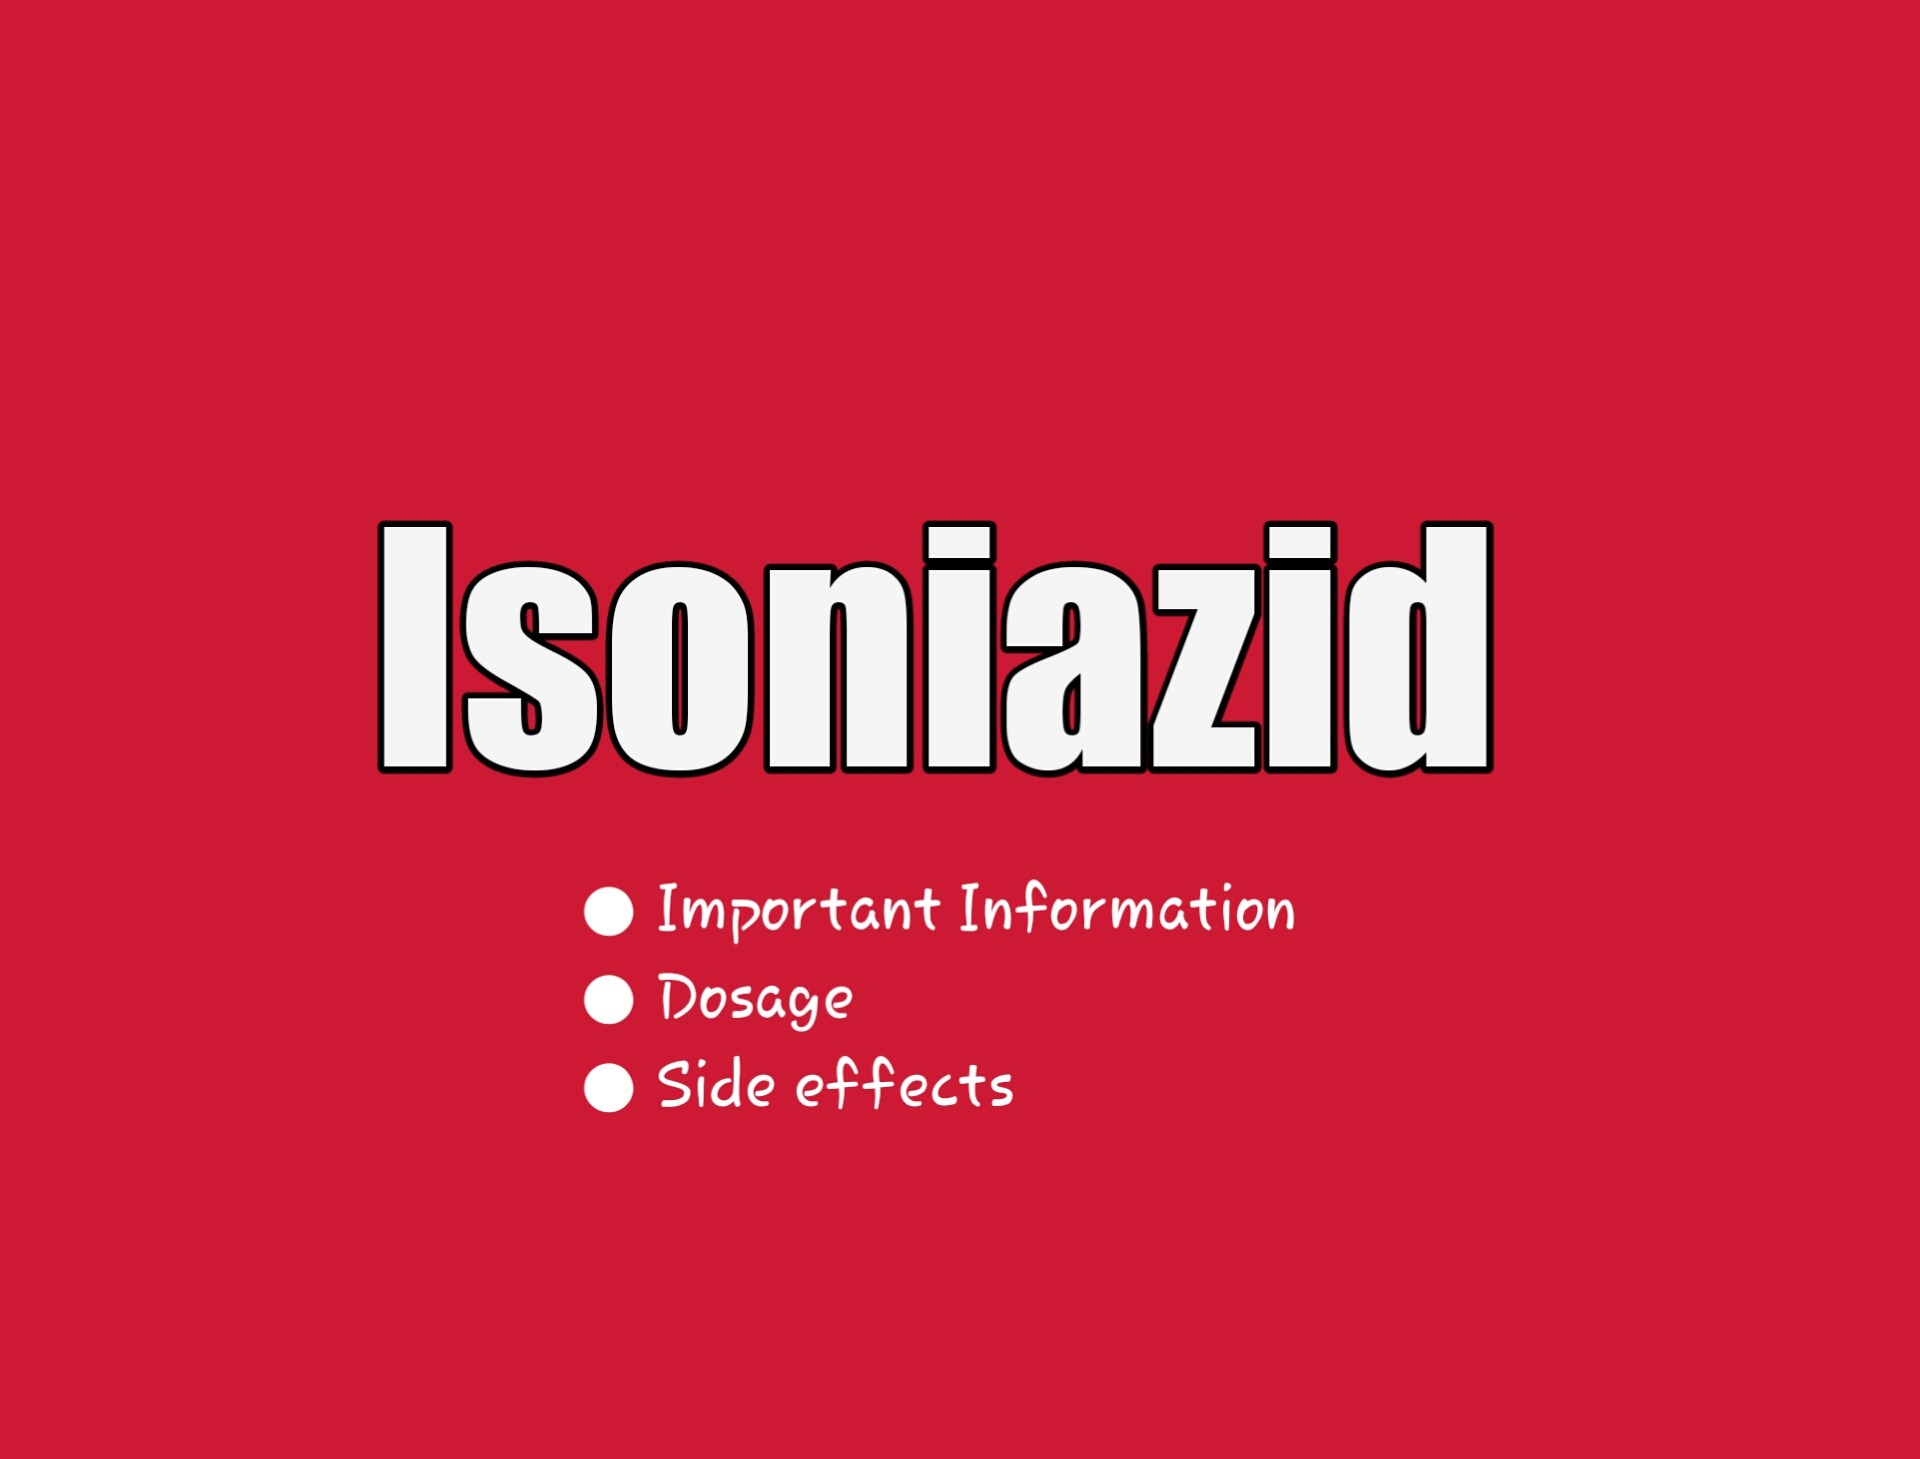 Important Information About Isoniazid